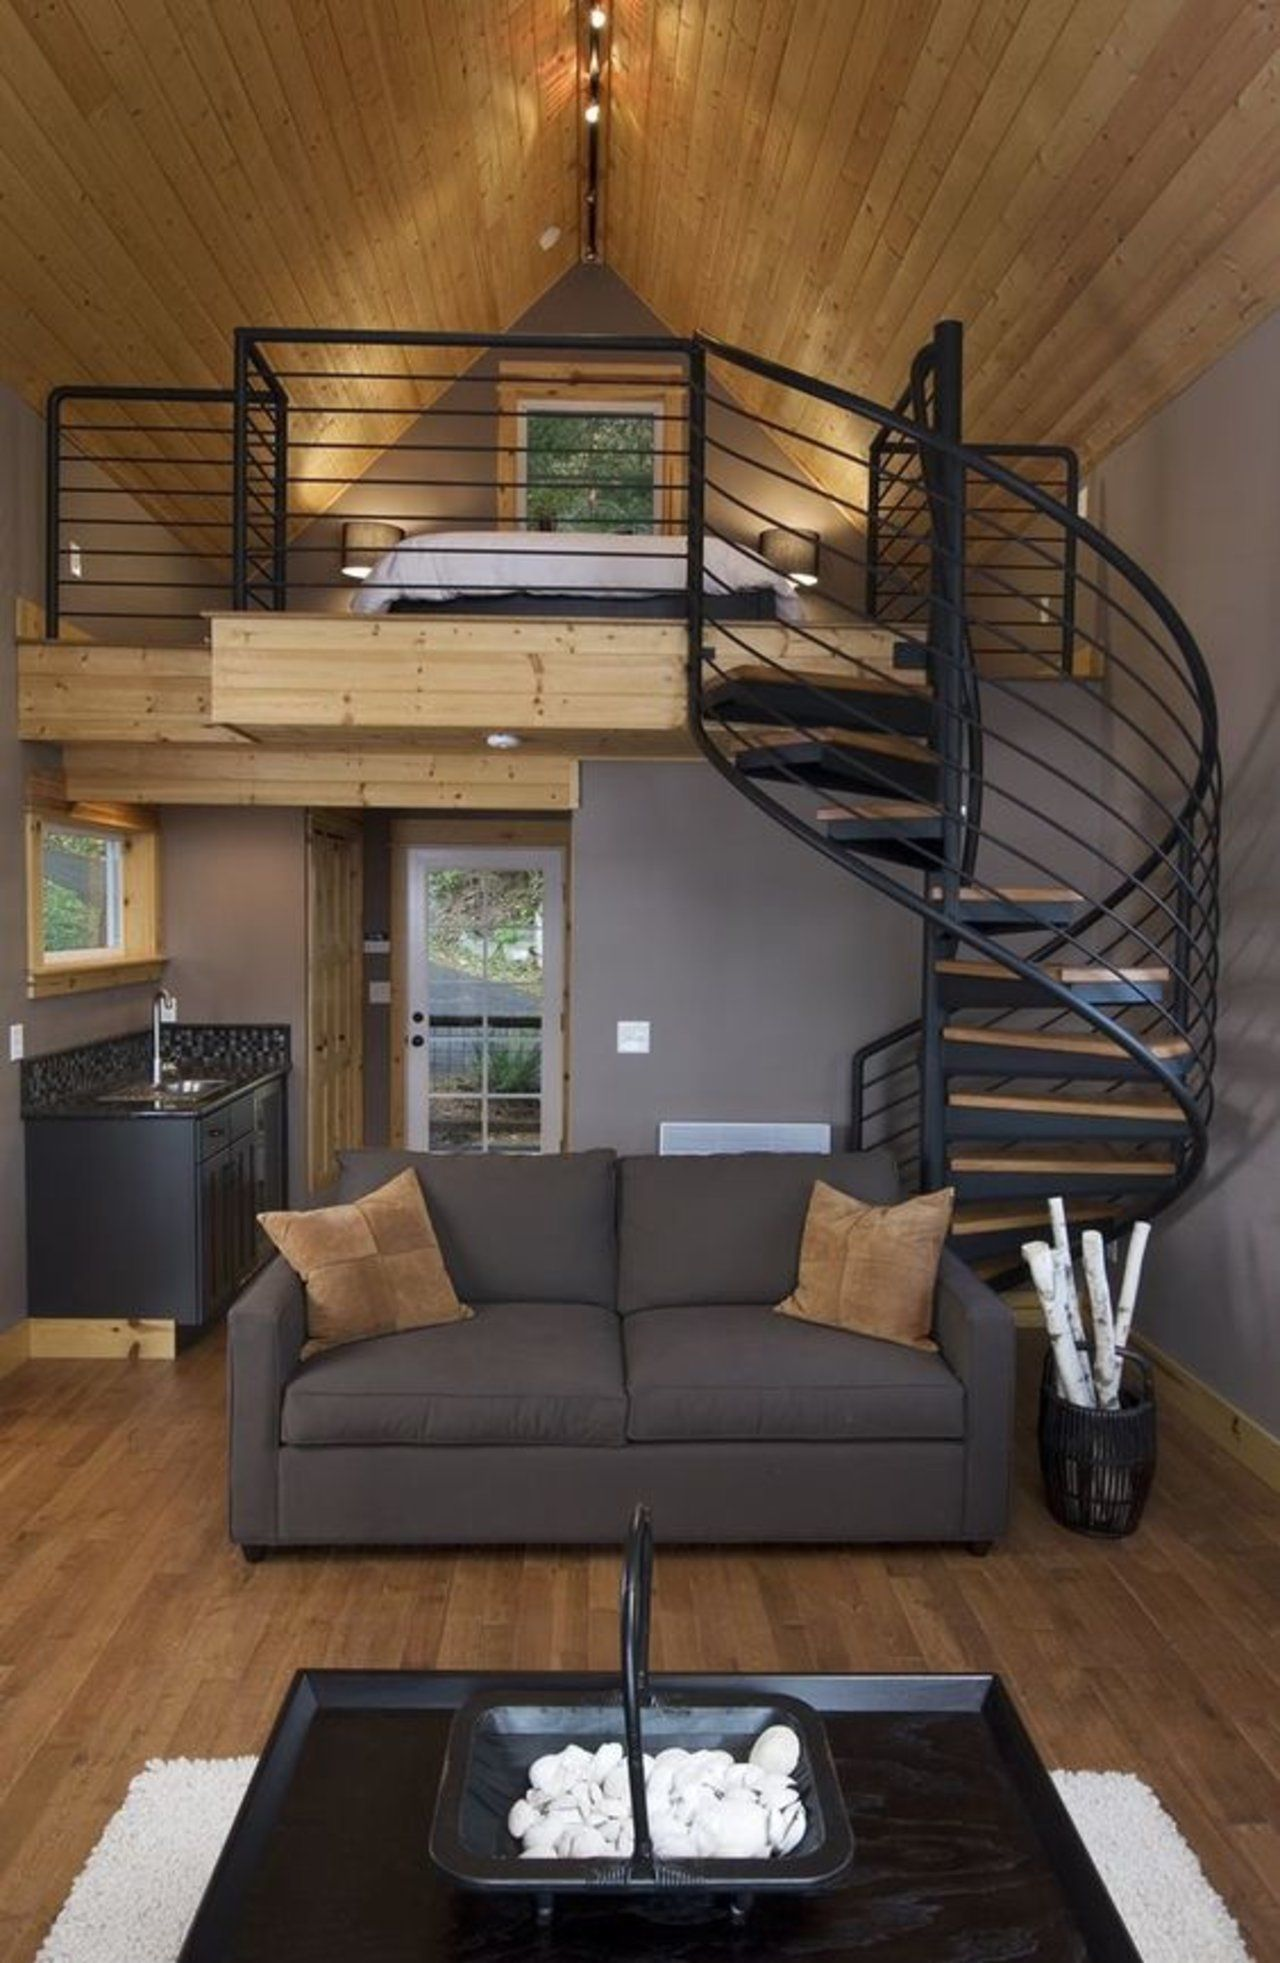 Best Kitchen Gallery: 6 Tiny Houses We Could Actually Live In Spiral Staircases Tiny of Efficient Home Loft Design on rachelxblog.com